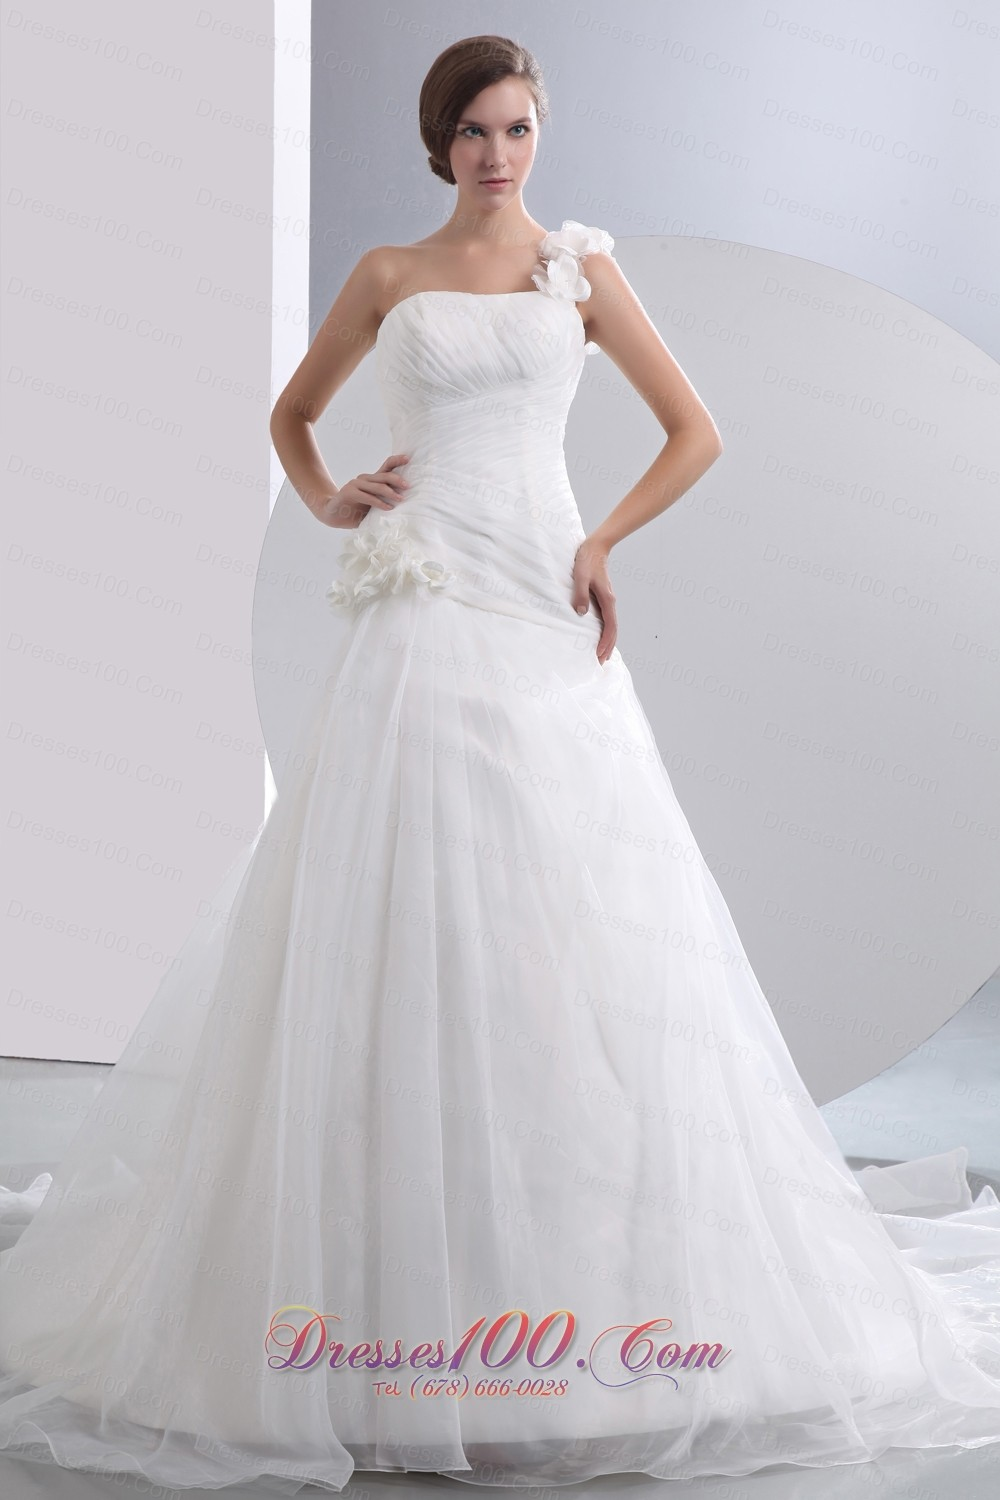 Simple A Line One Shoulder Low Cost Wedding Dress Chapel Train Taffeta And Or